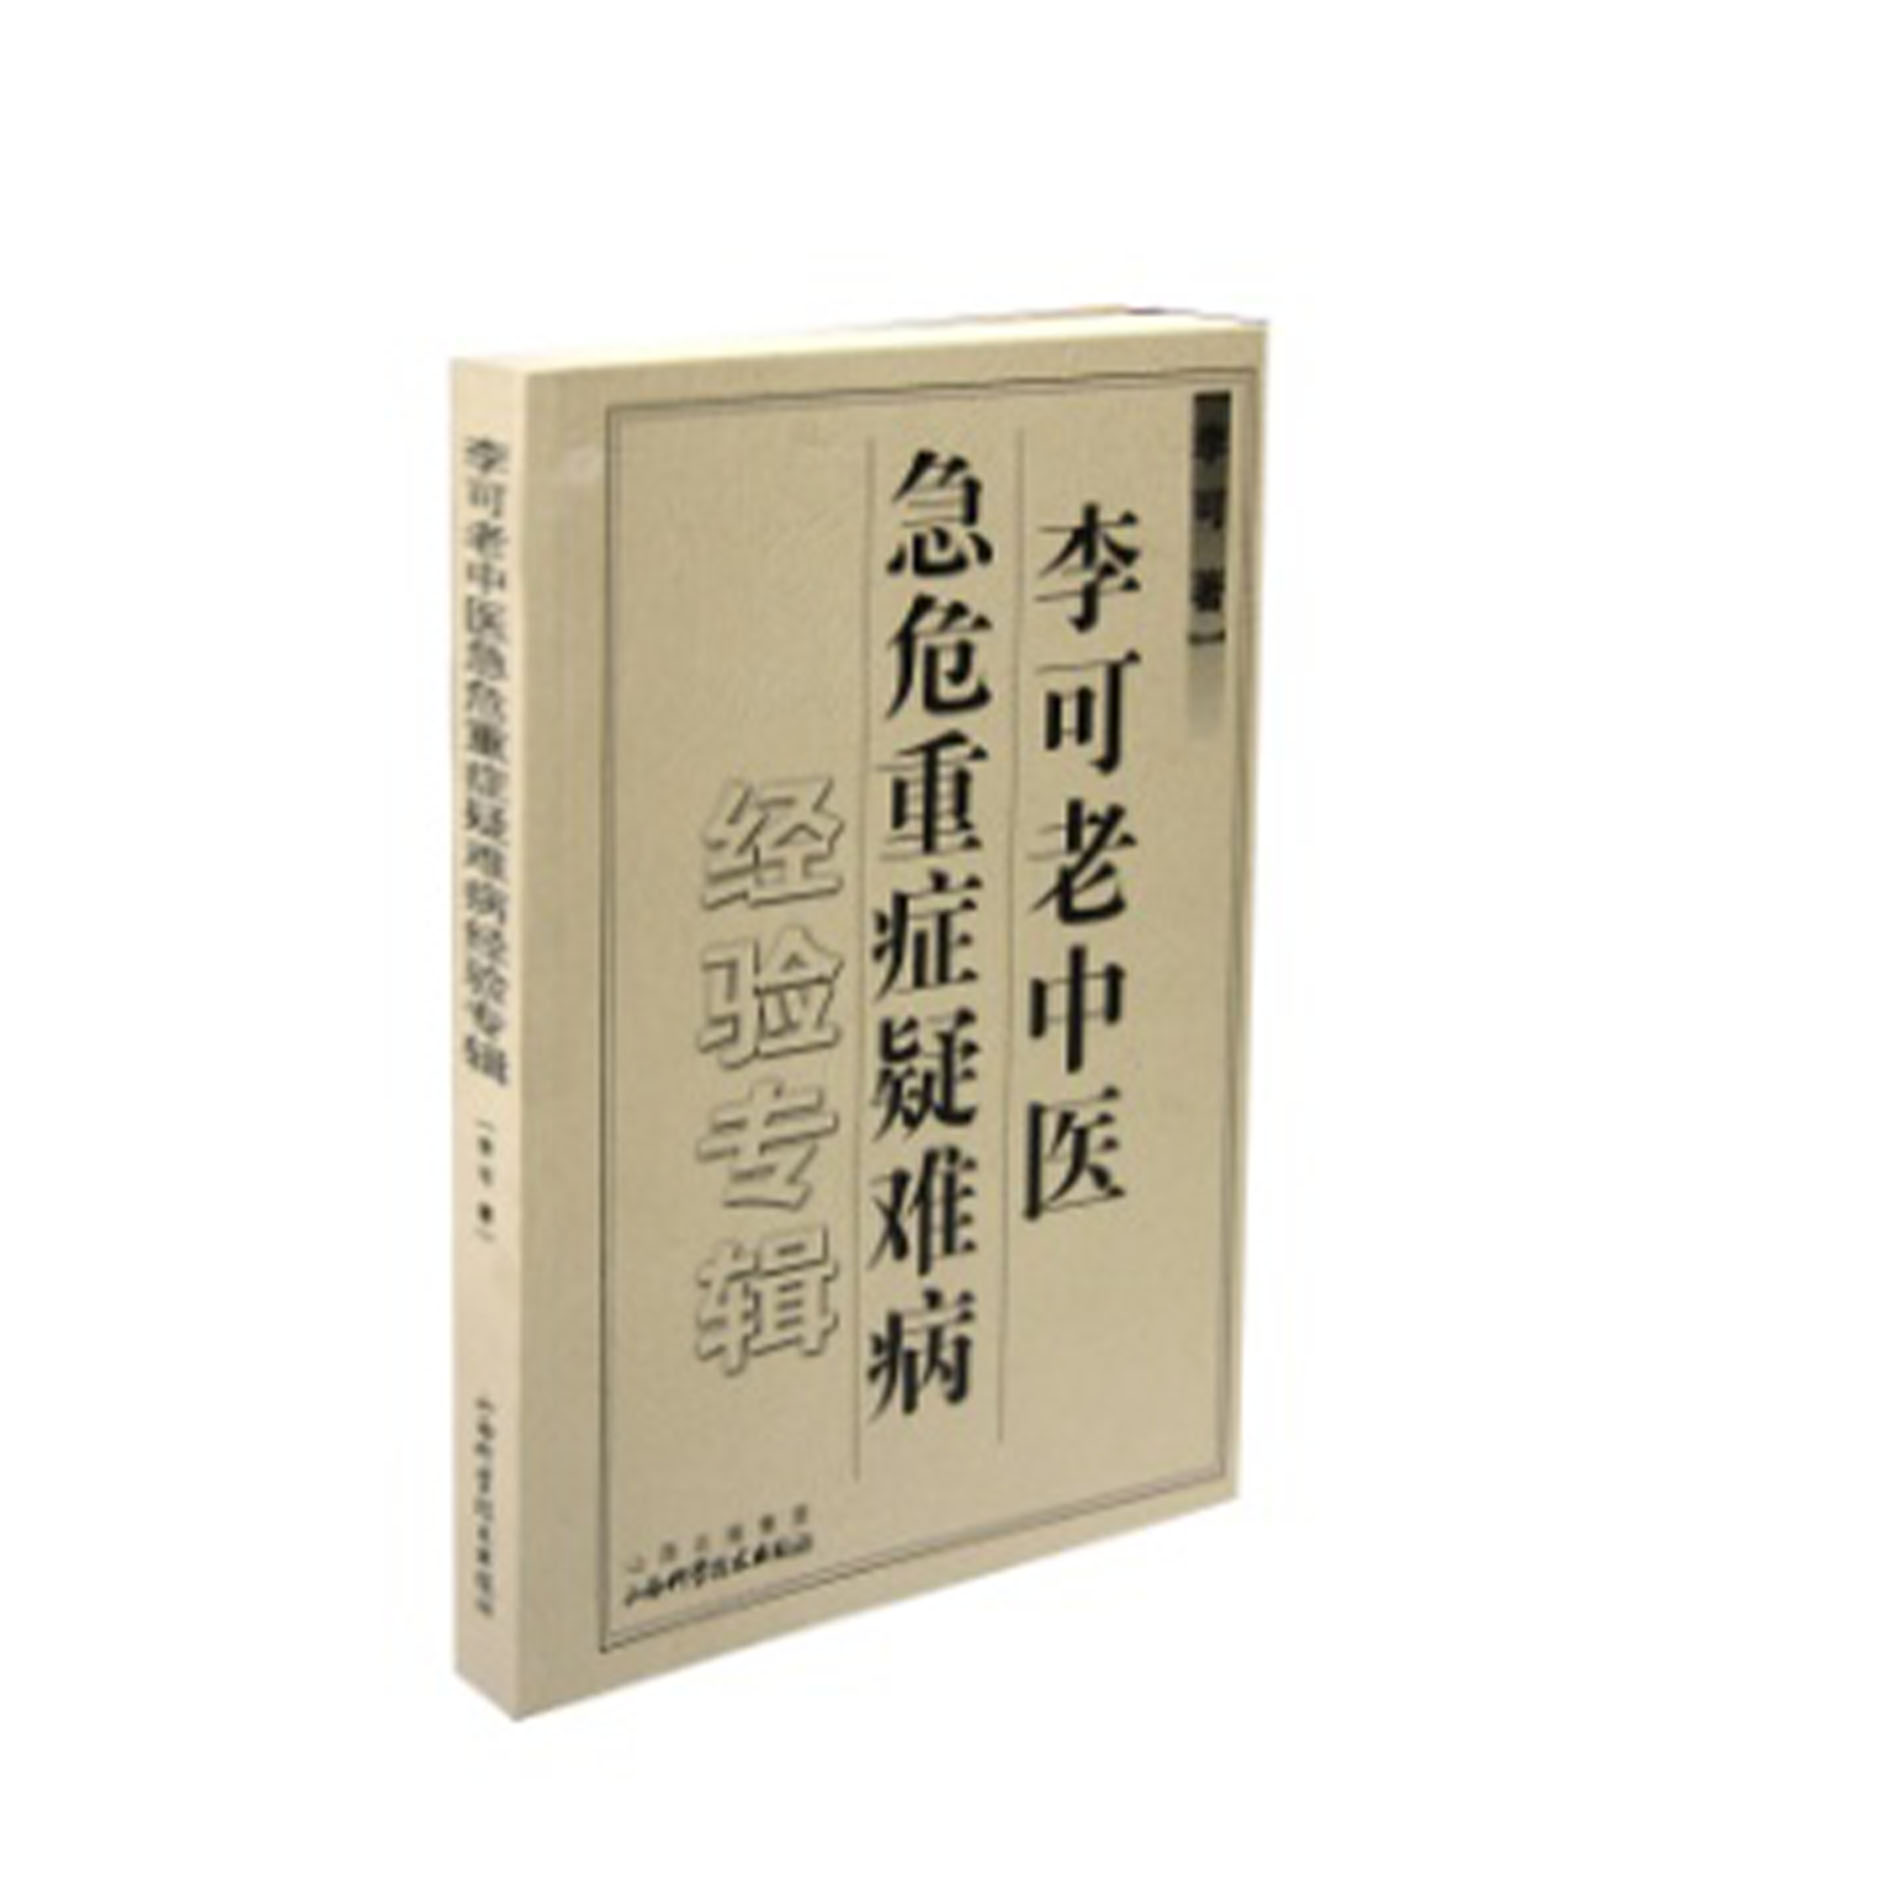 Treatment of Acute, Severe and Difficult Diseases of Li Ke, Old Traditional Chinese Medicine Doctor